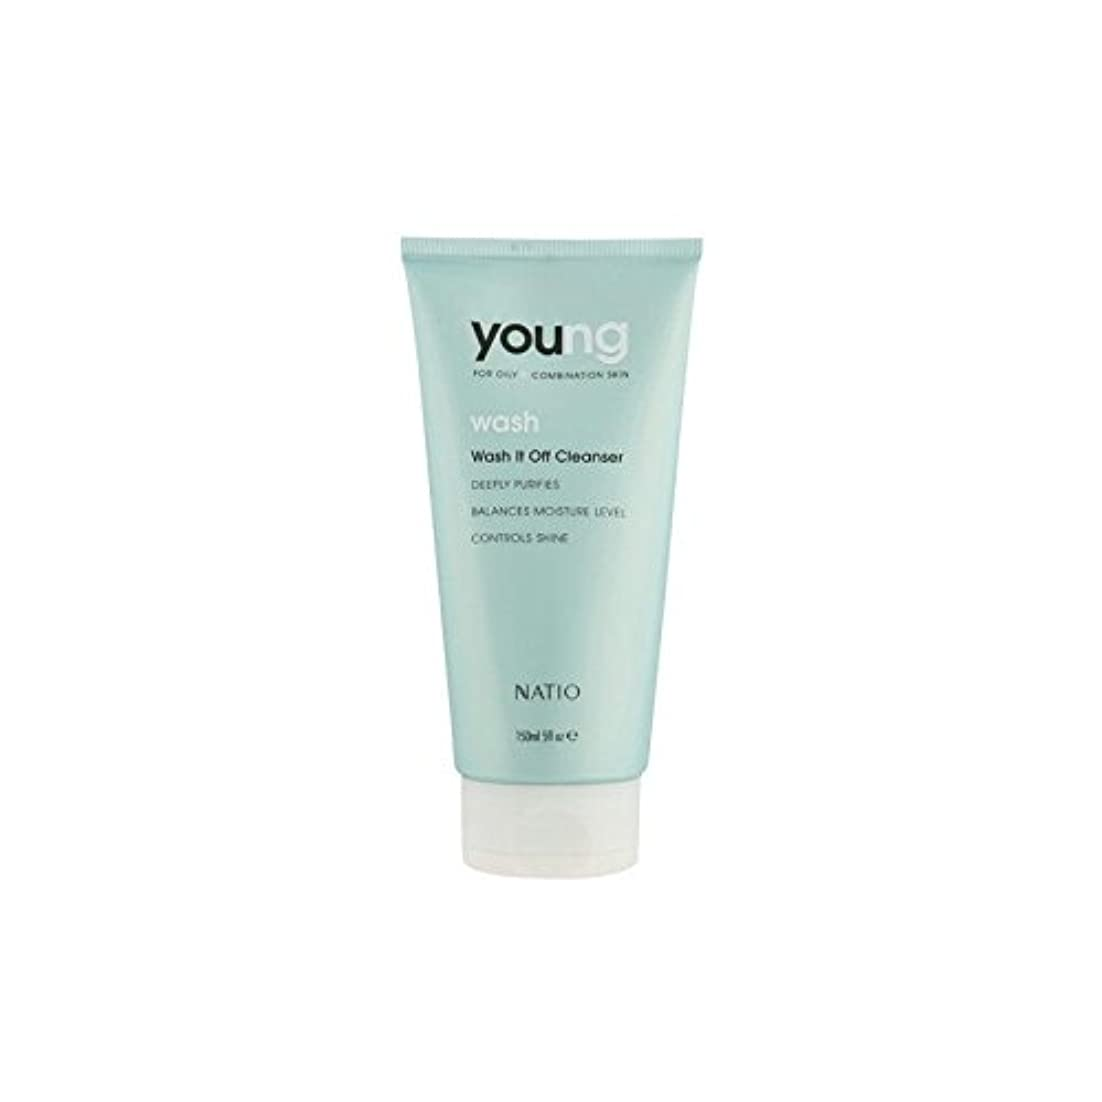 Natio Young Wash It Off Cleanser (150ml) - 若いウォッシュそれオフクレンザー(150ミリリットル) [並行輸入品]